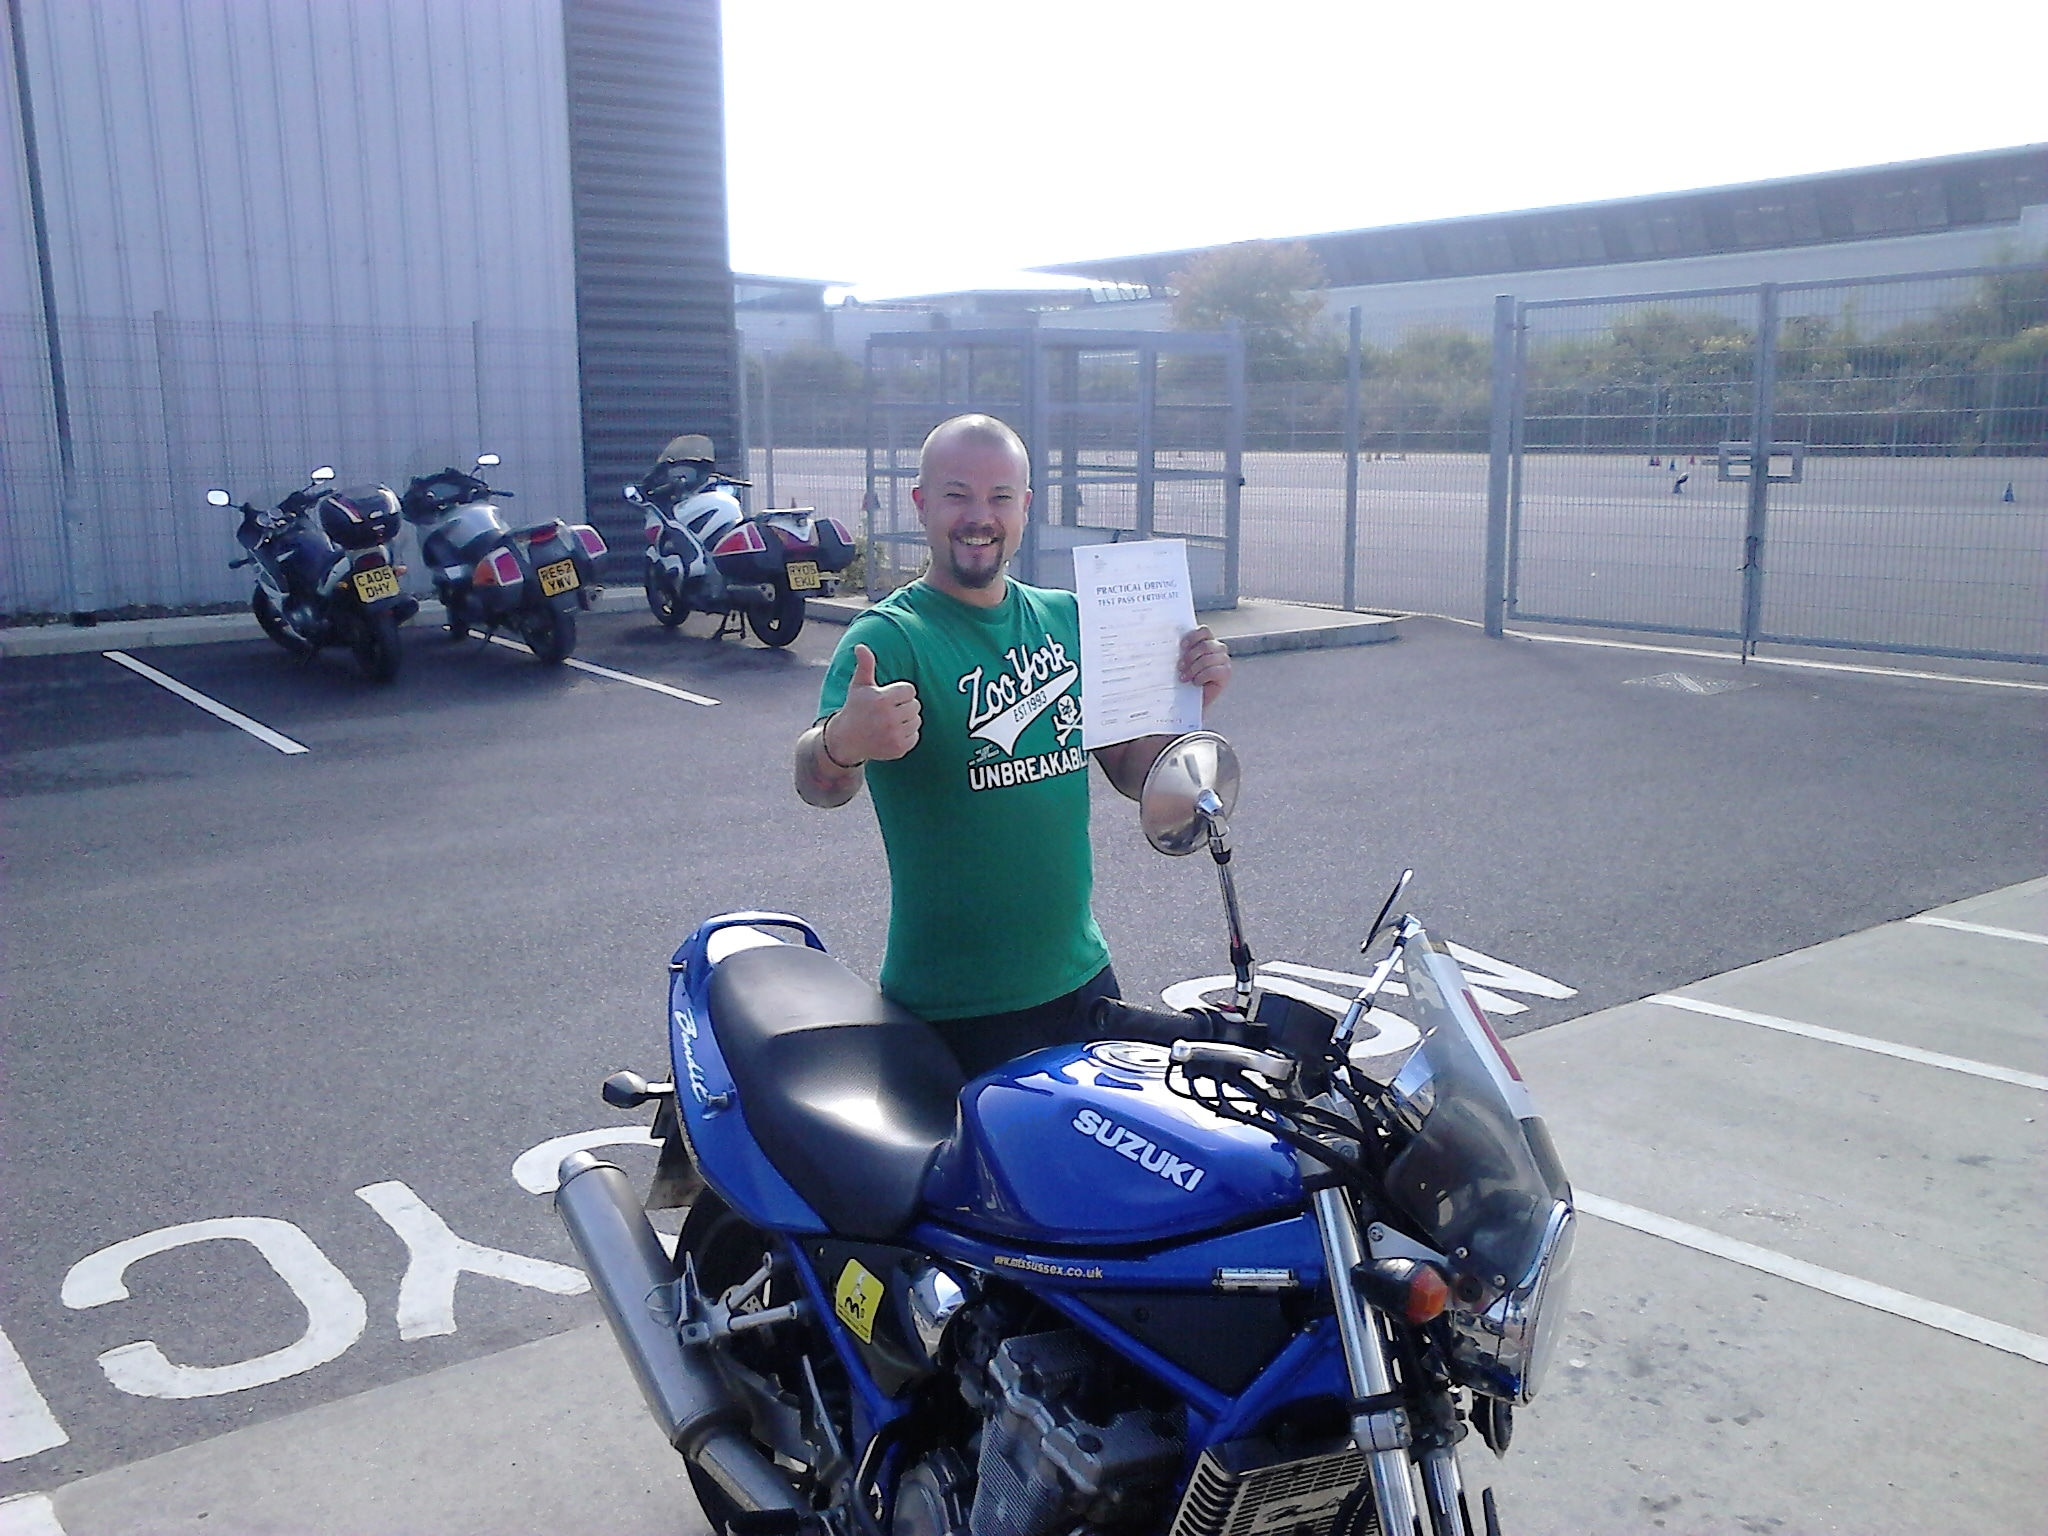 A happy Hove biker passes DAS!